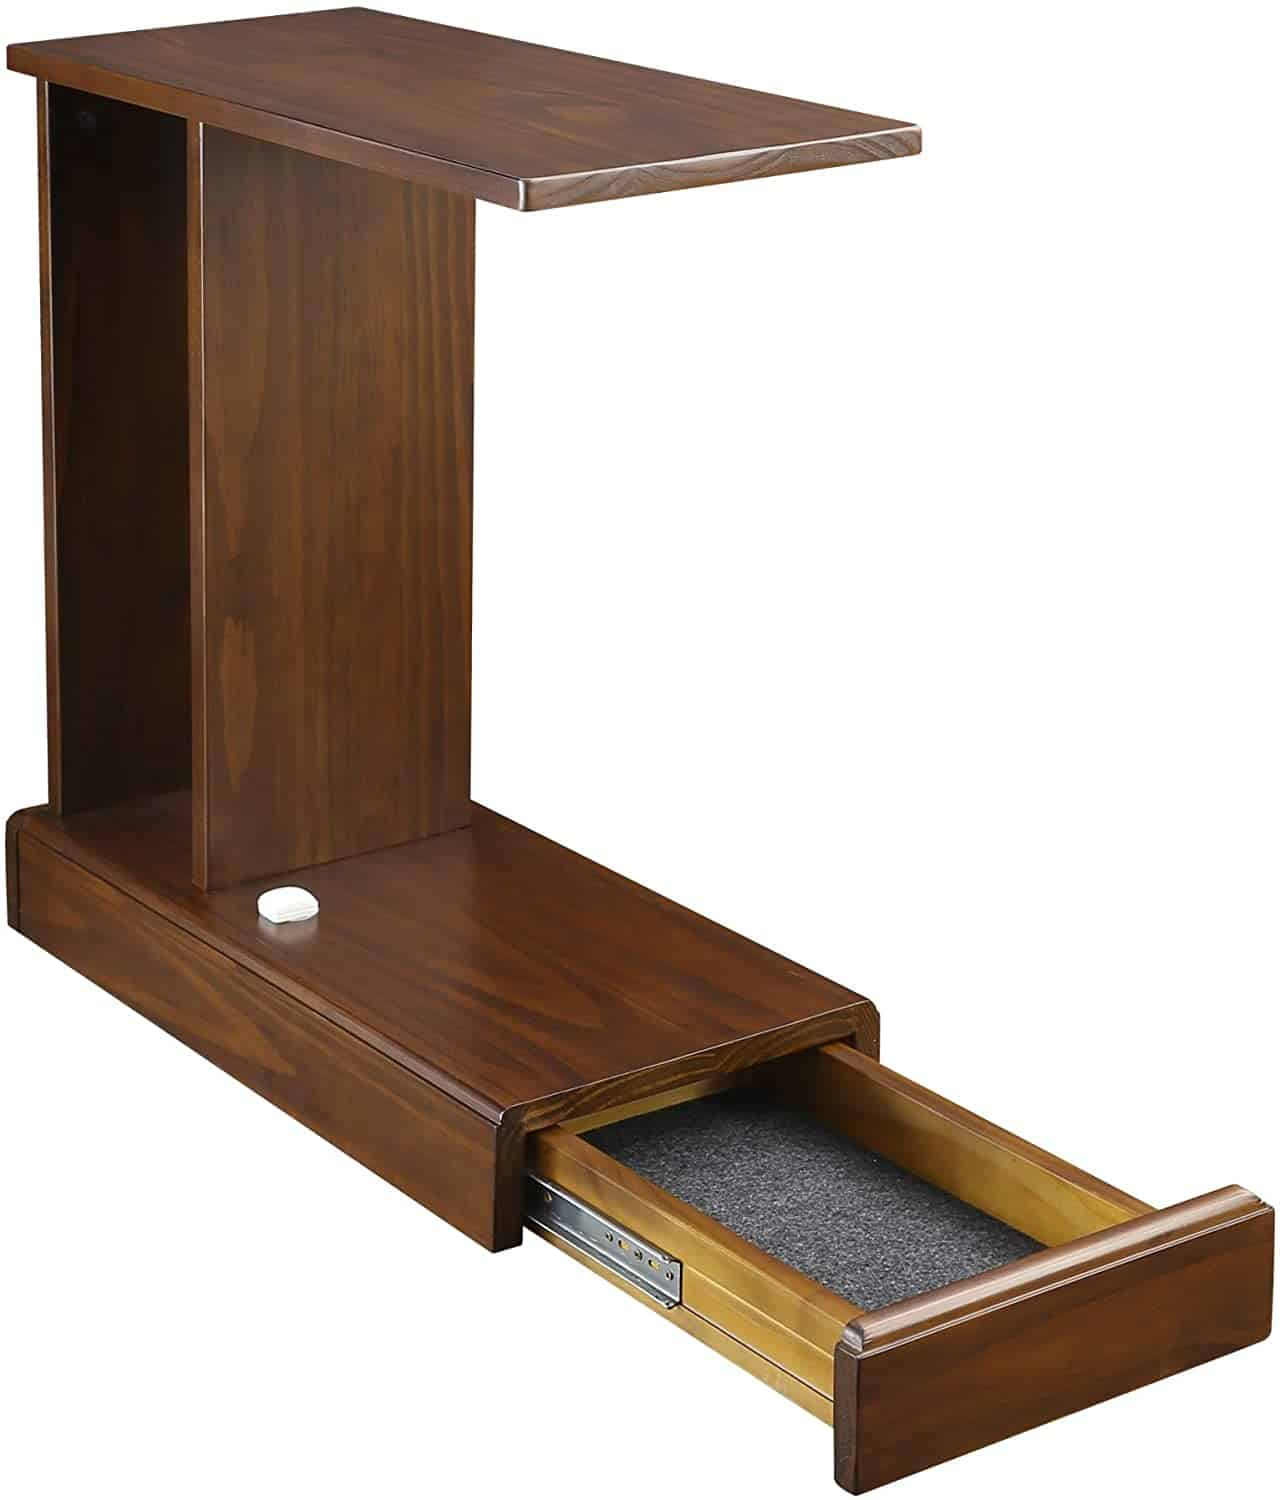 C table with a hidden storage